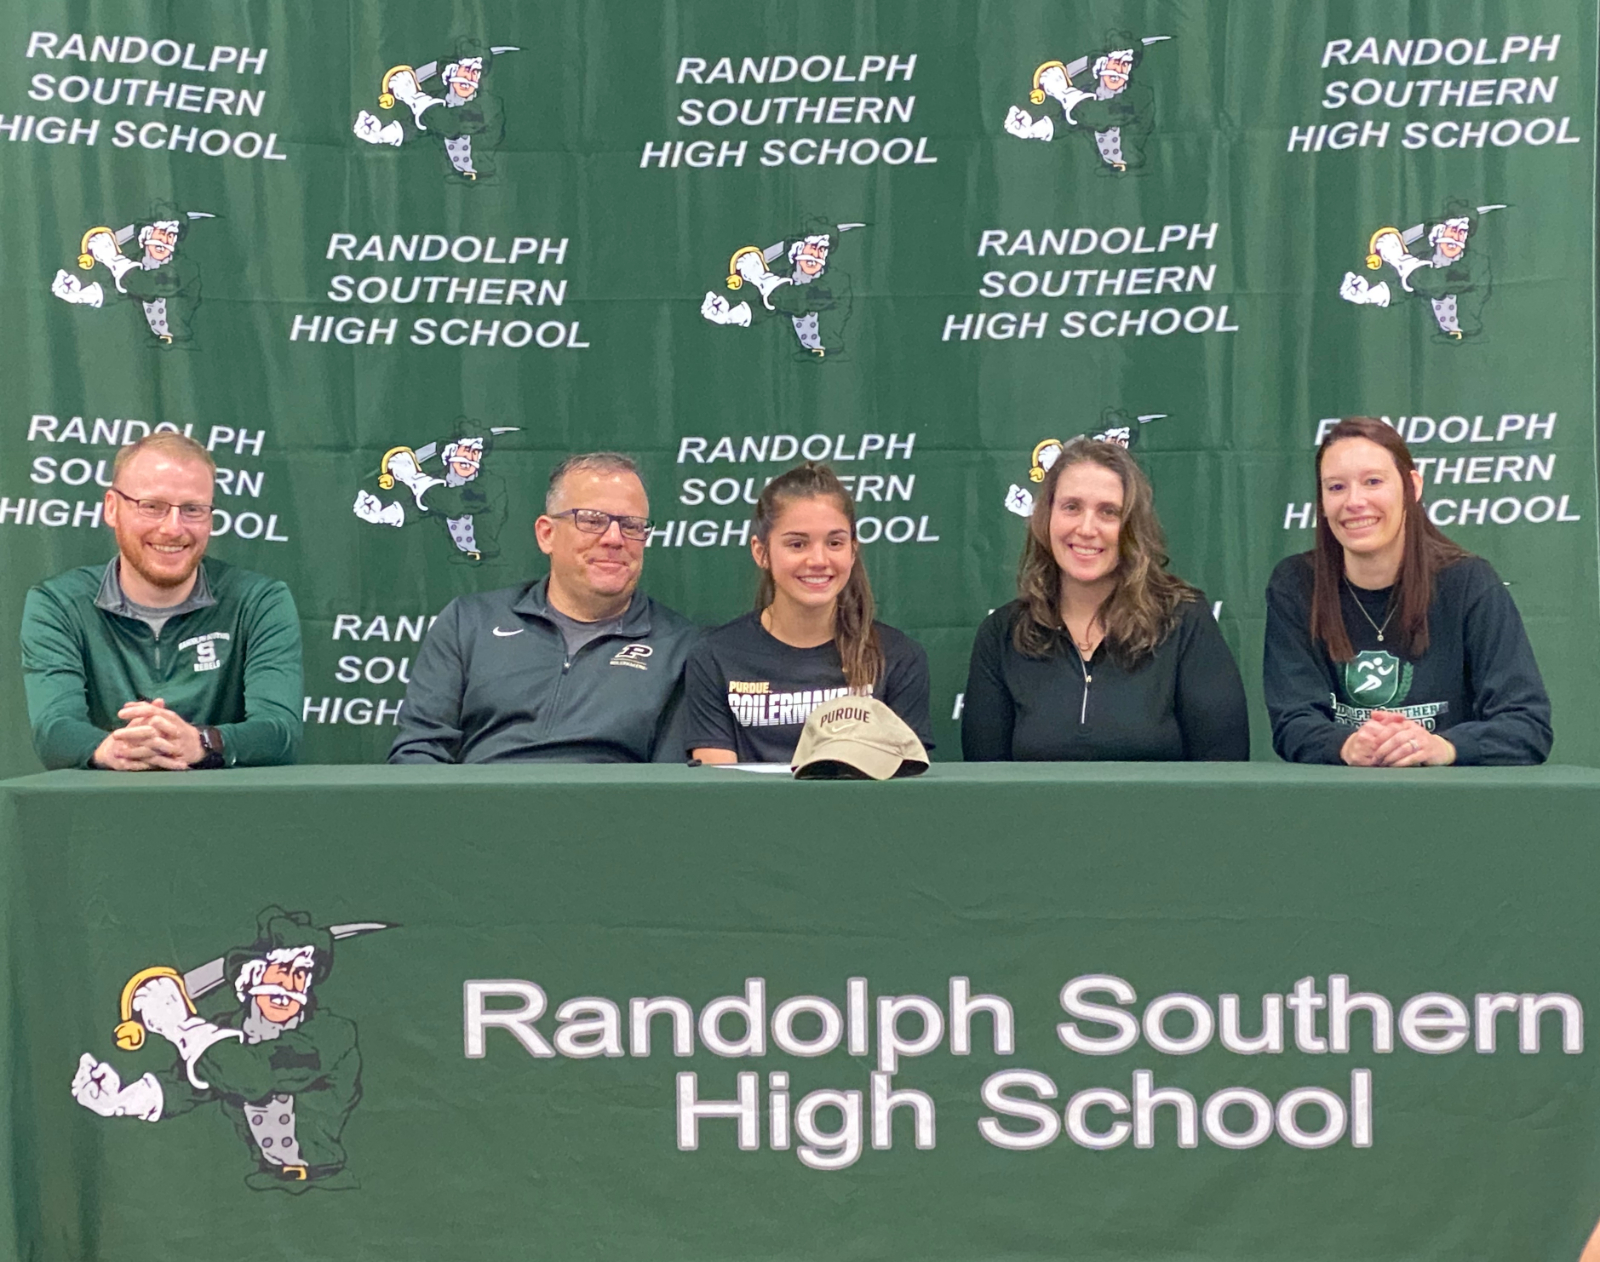 LEAH KEESLING SIGNS WITH PURDUE